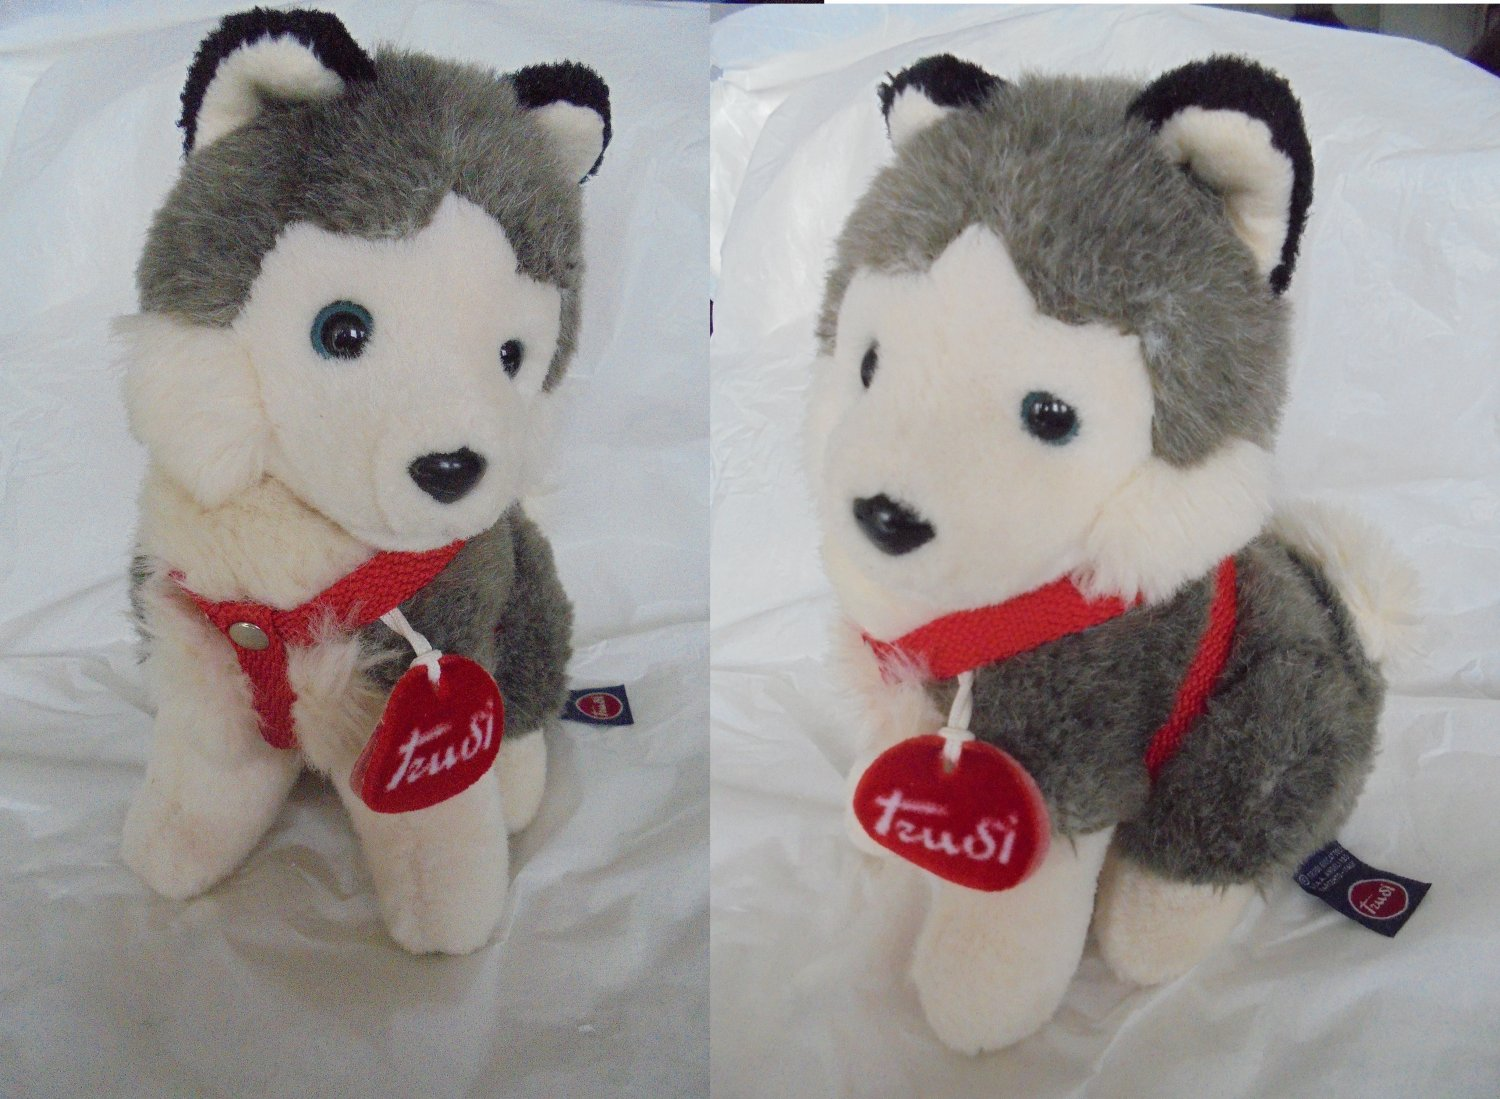 TRUDI Siberian Husky DOG stuffed toy animal peluche Original cm 20